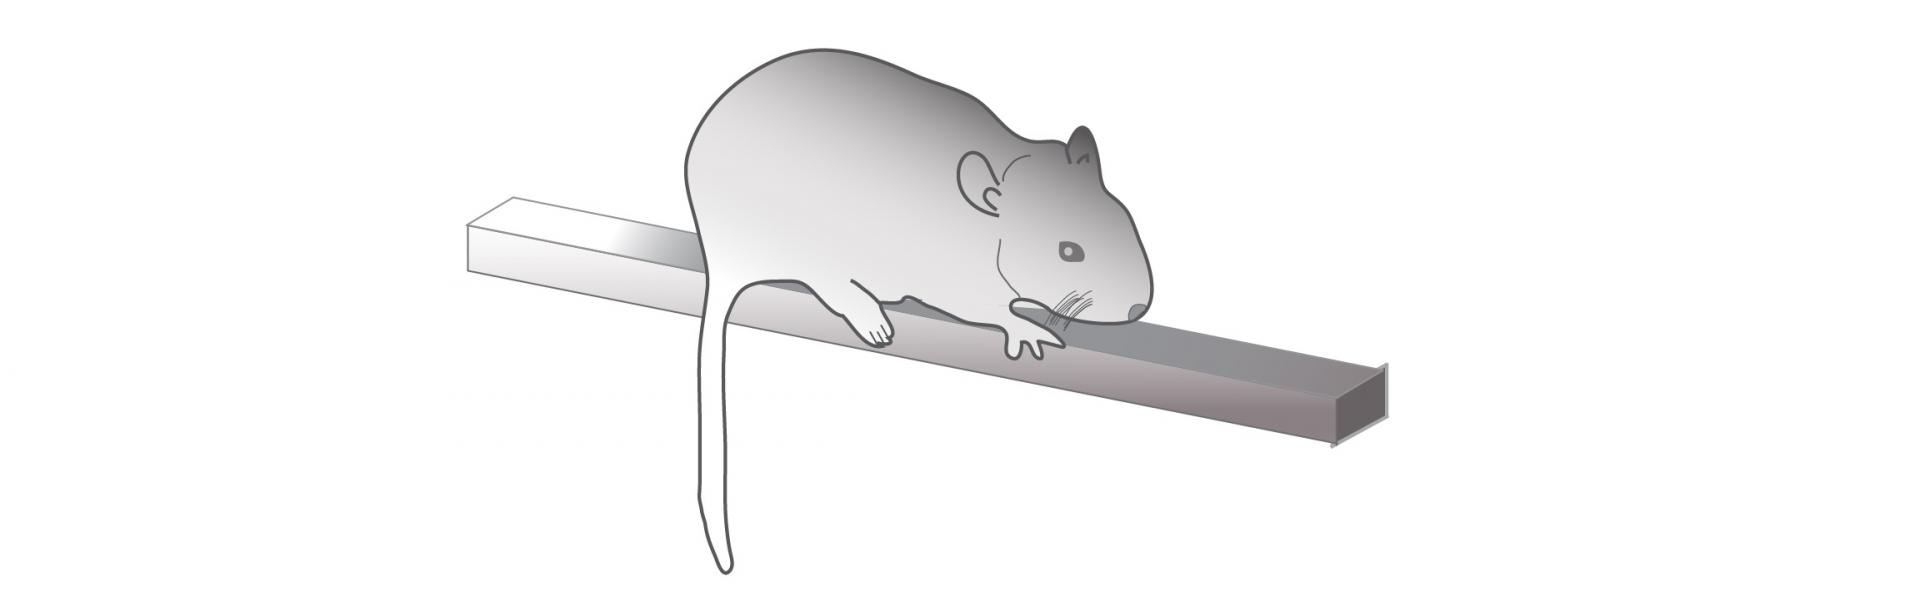 Mouse on a balance beam